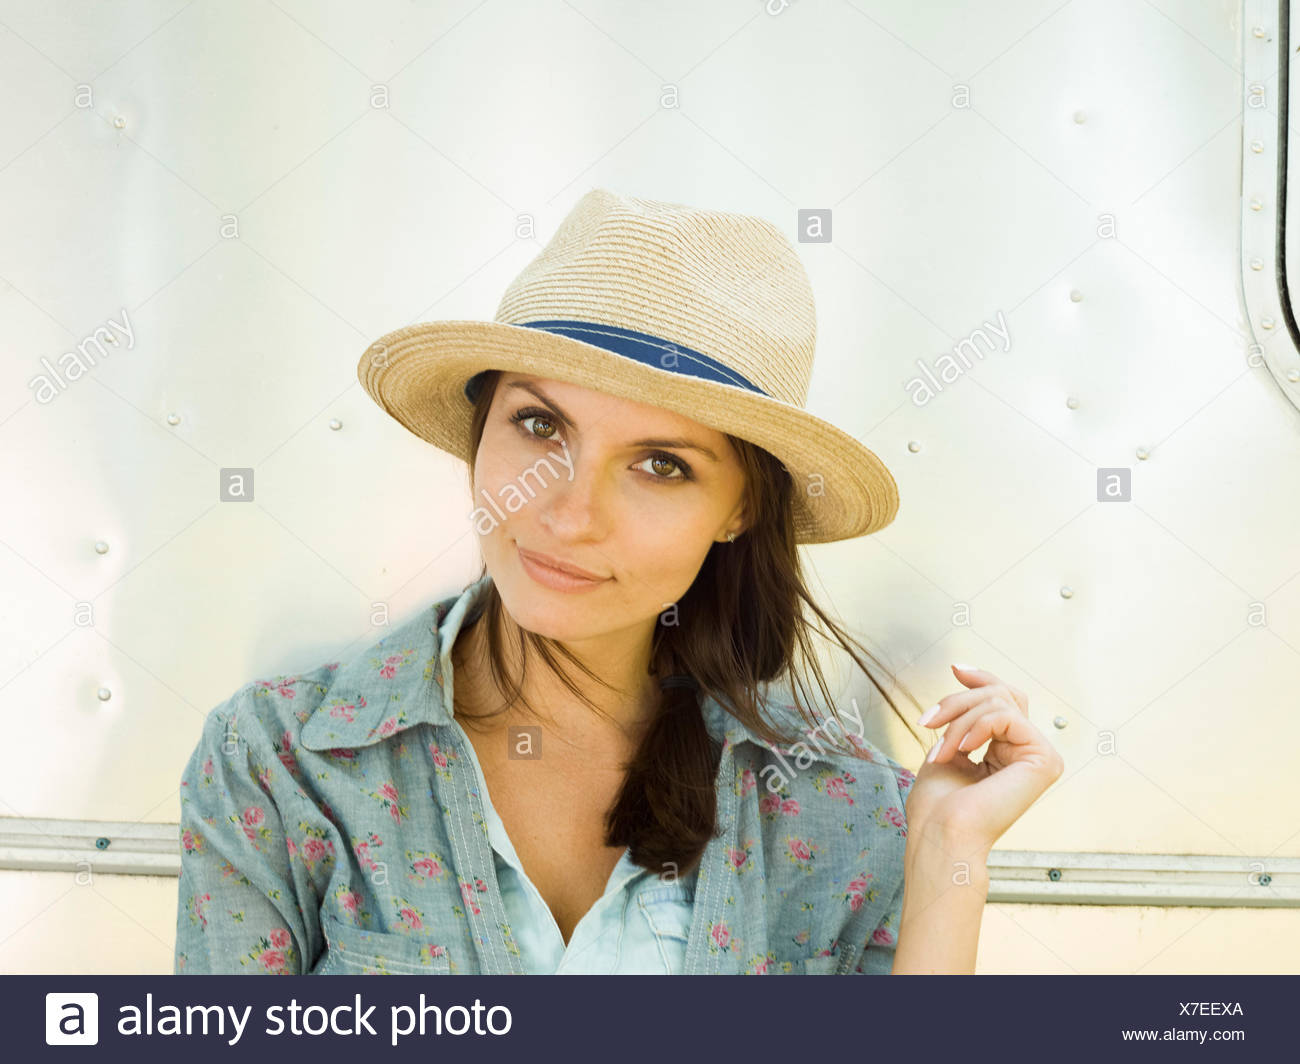 A young woman in a straw hat, her head tilted looking curious. - Stock Image